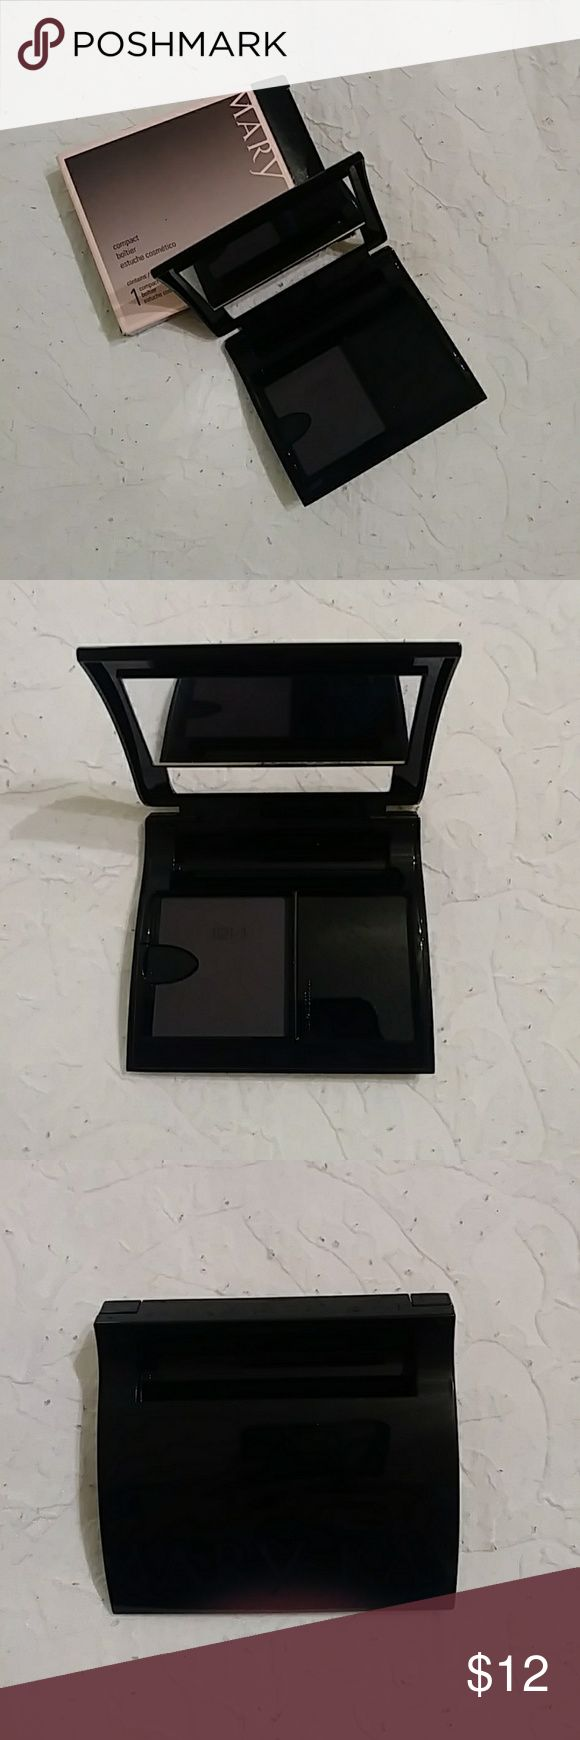 Mary Kay Compact New in Box  Mary Kay Compact with mirror . Fill with your favorite colors  Has a place for a lipstick also  💄 Mary Kay Makeup Brushes & Tools